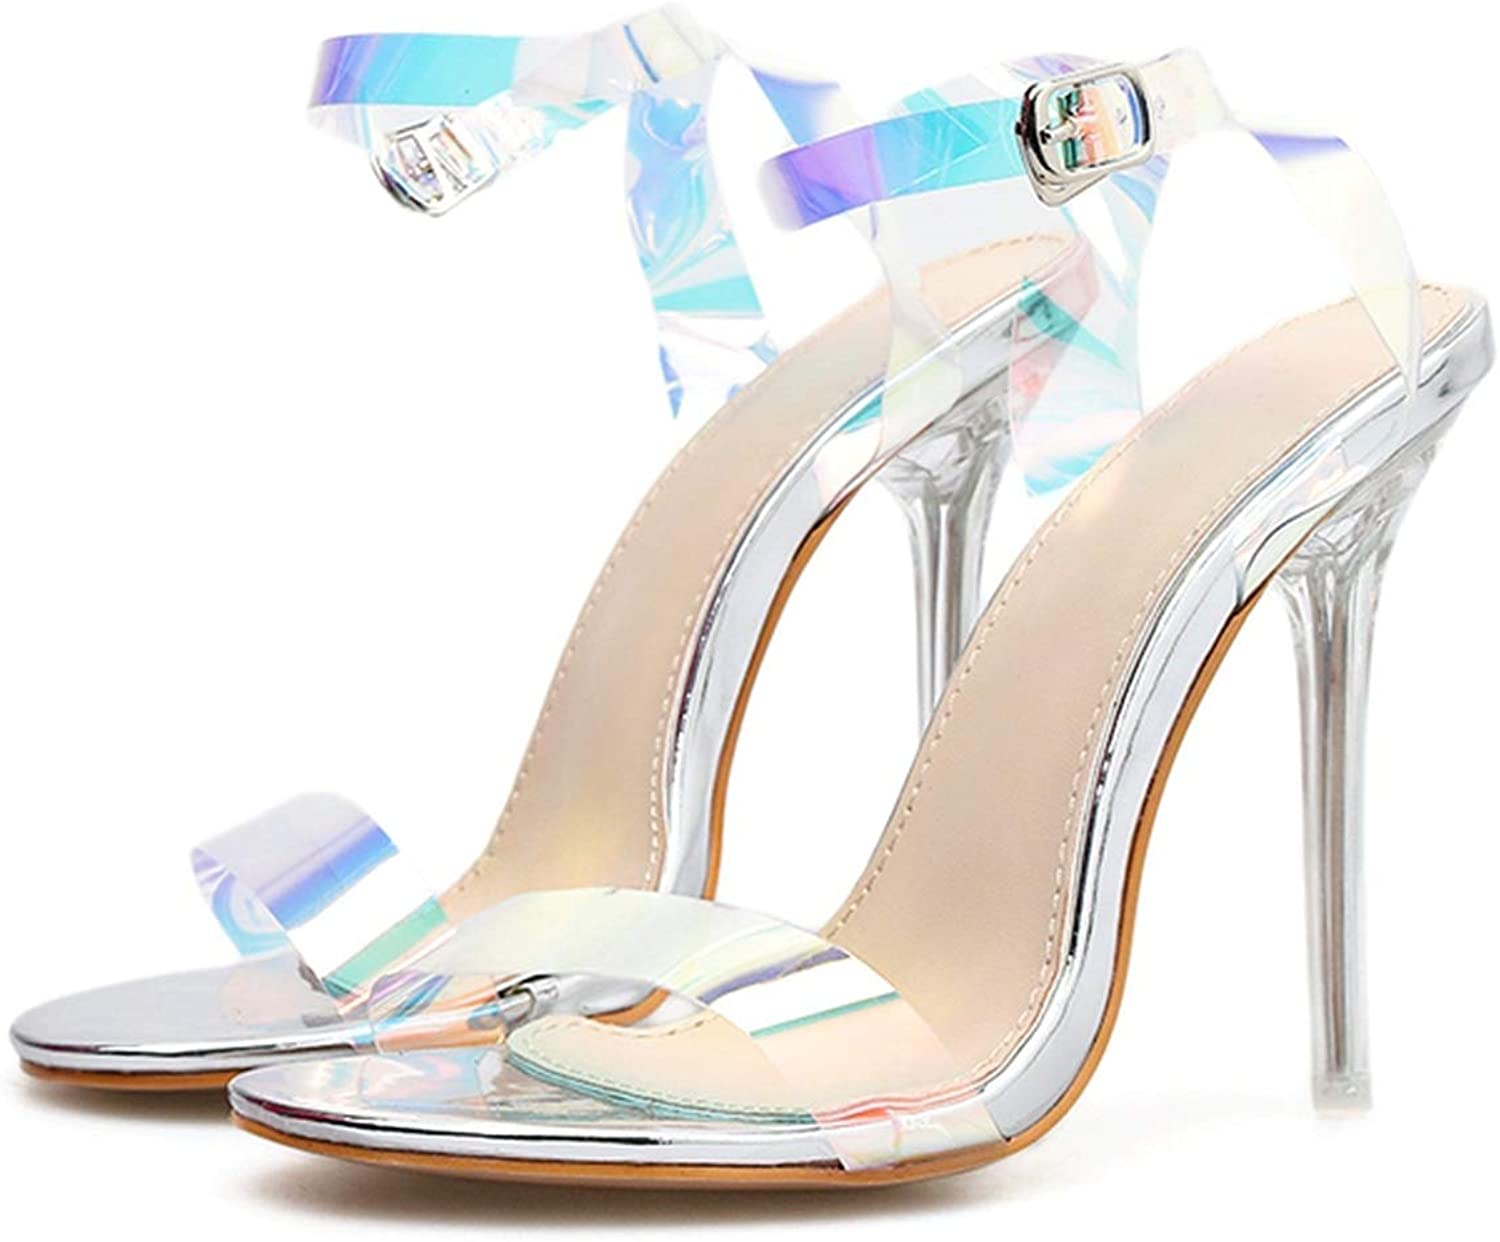 Summer Women Sandals Crystal 11Cm High Heels Sexy Strap Female Transparent Clear Block Heels Fetish Metal Heels shoes